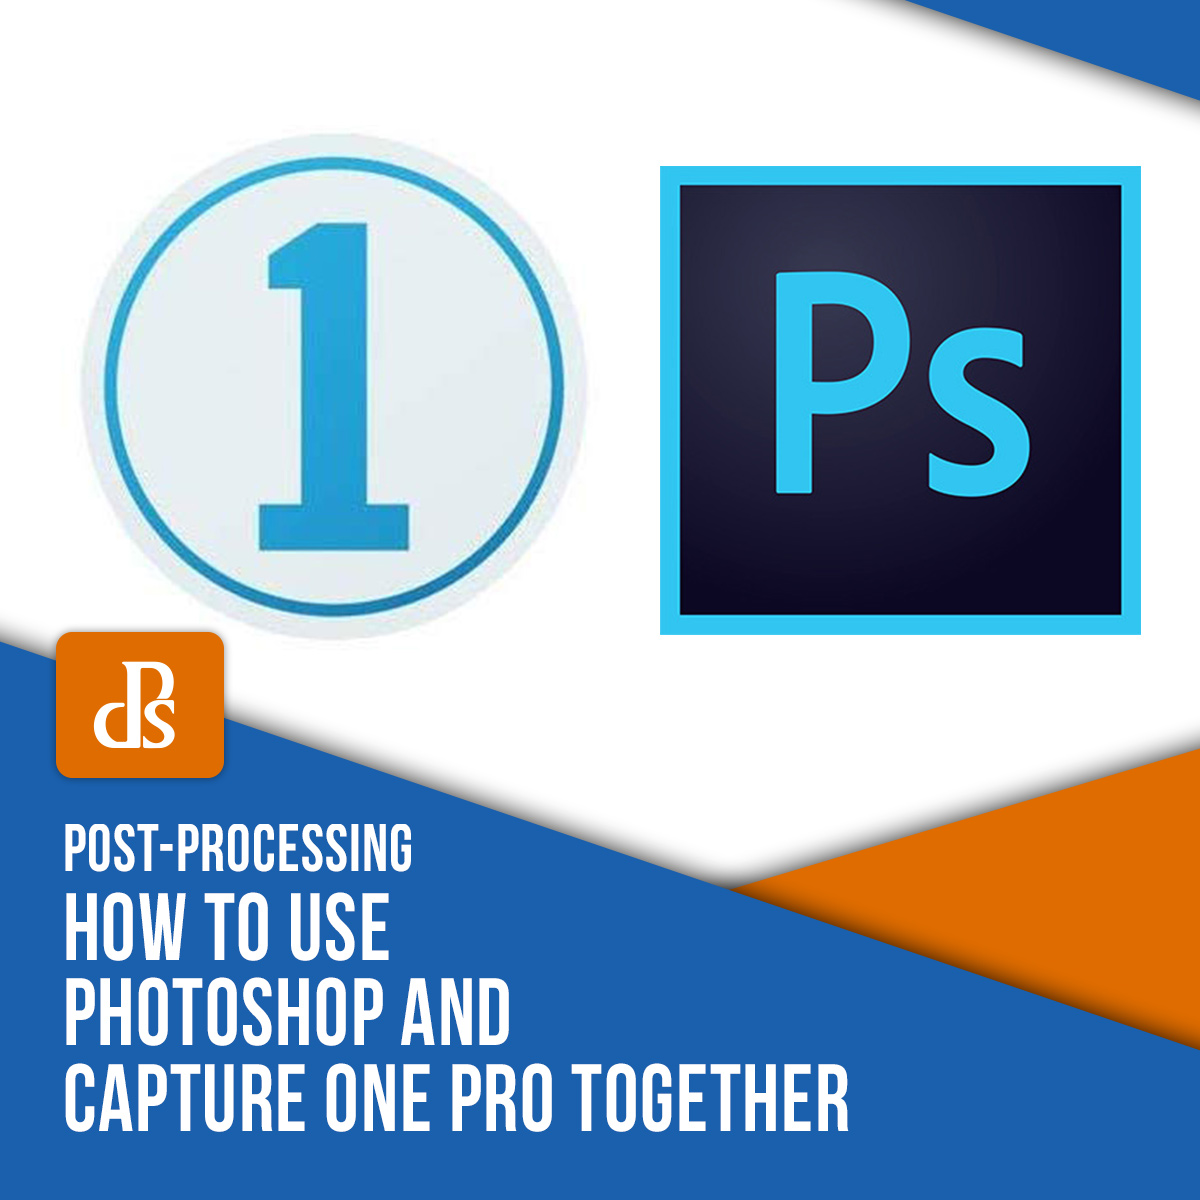 https://i1.wp.com/digital-photography-school.com/wp-content/uploads/2020/03/dps-using-photoshop-and-capture-one-together.jpg?ssl=1